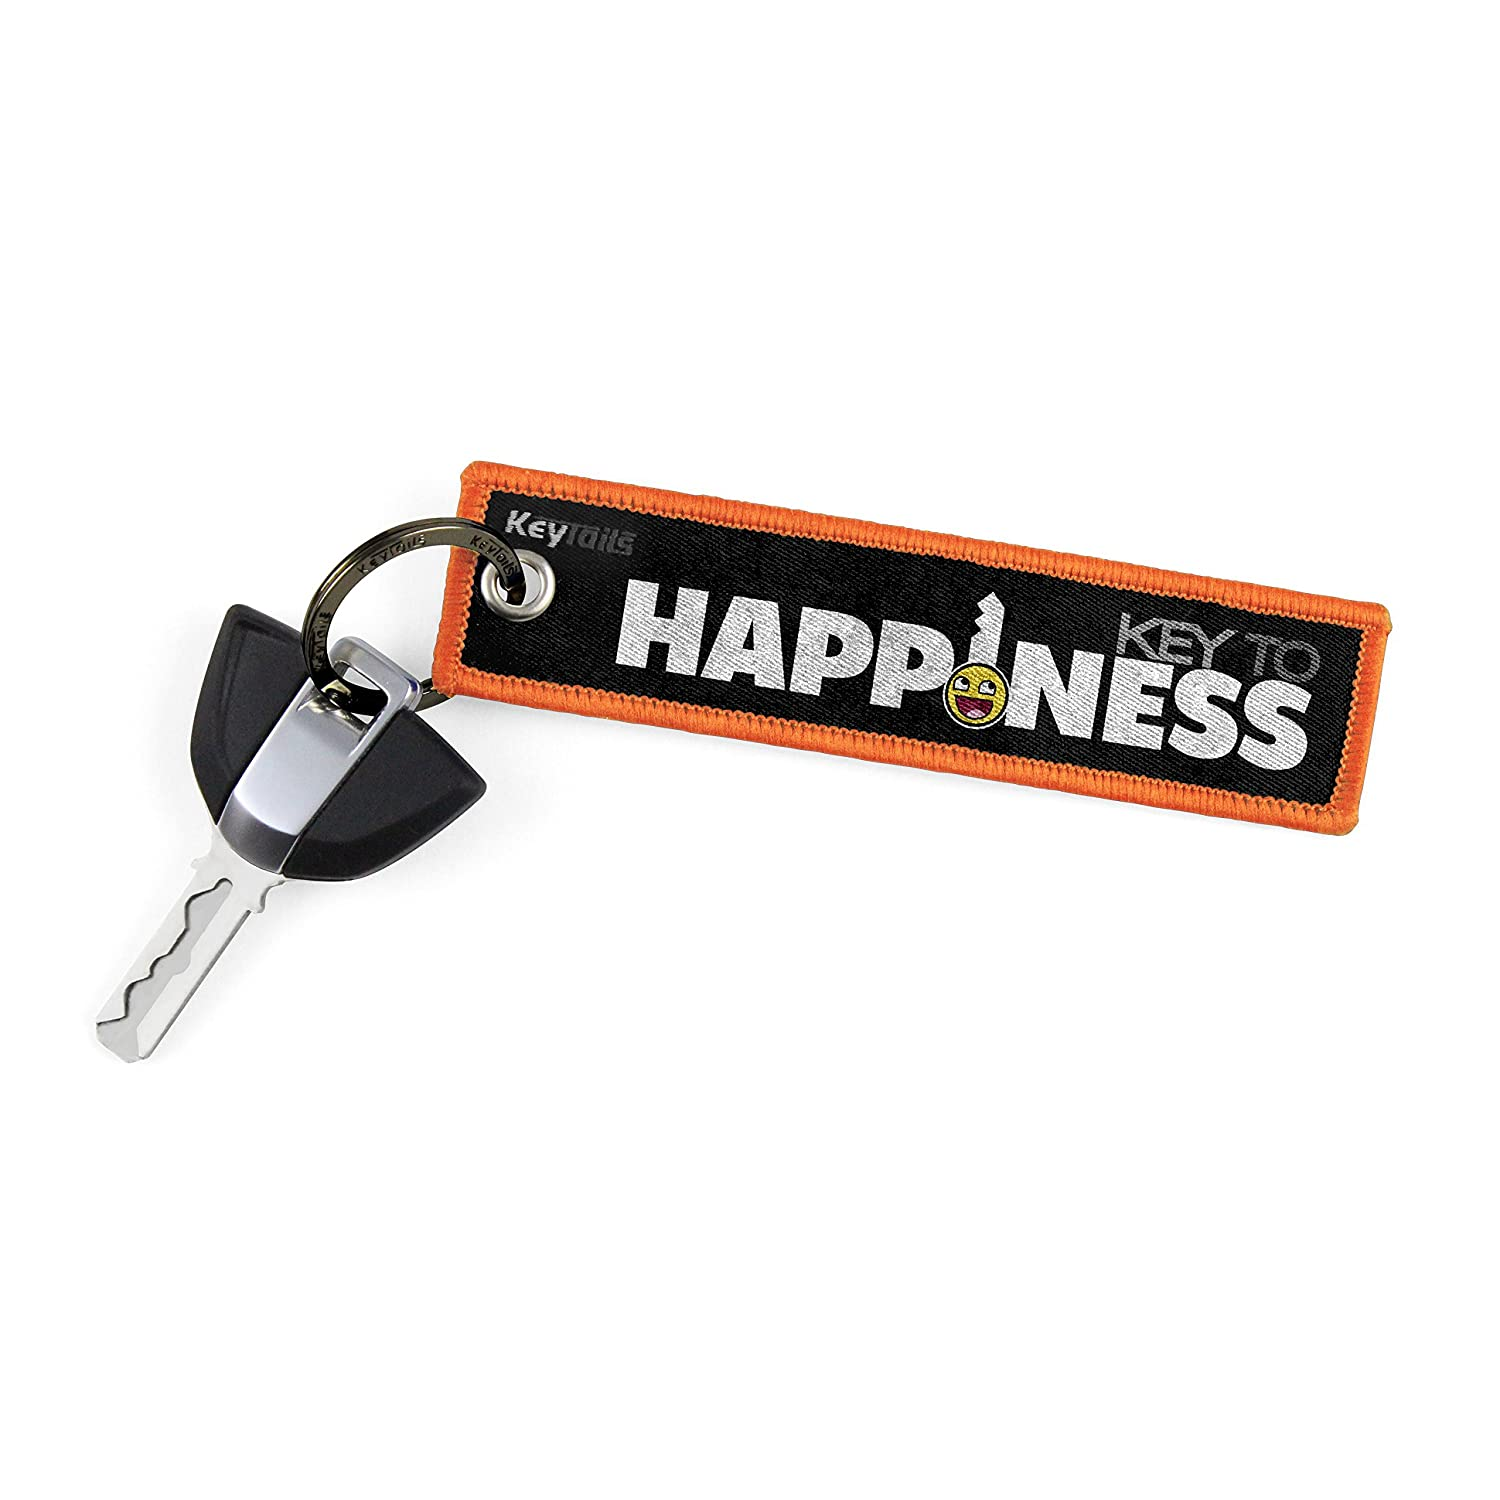 Car ATV Premium Quality Key Tag for Motorcycle UTV KEYTAILS Keychains Key to Happiness Scooter